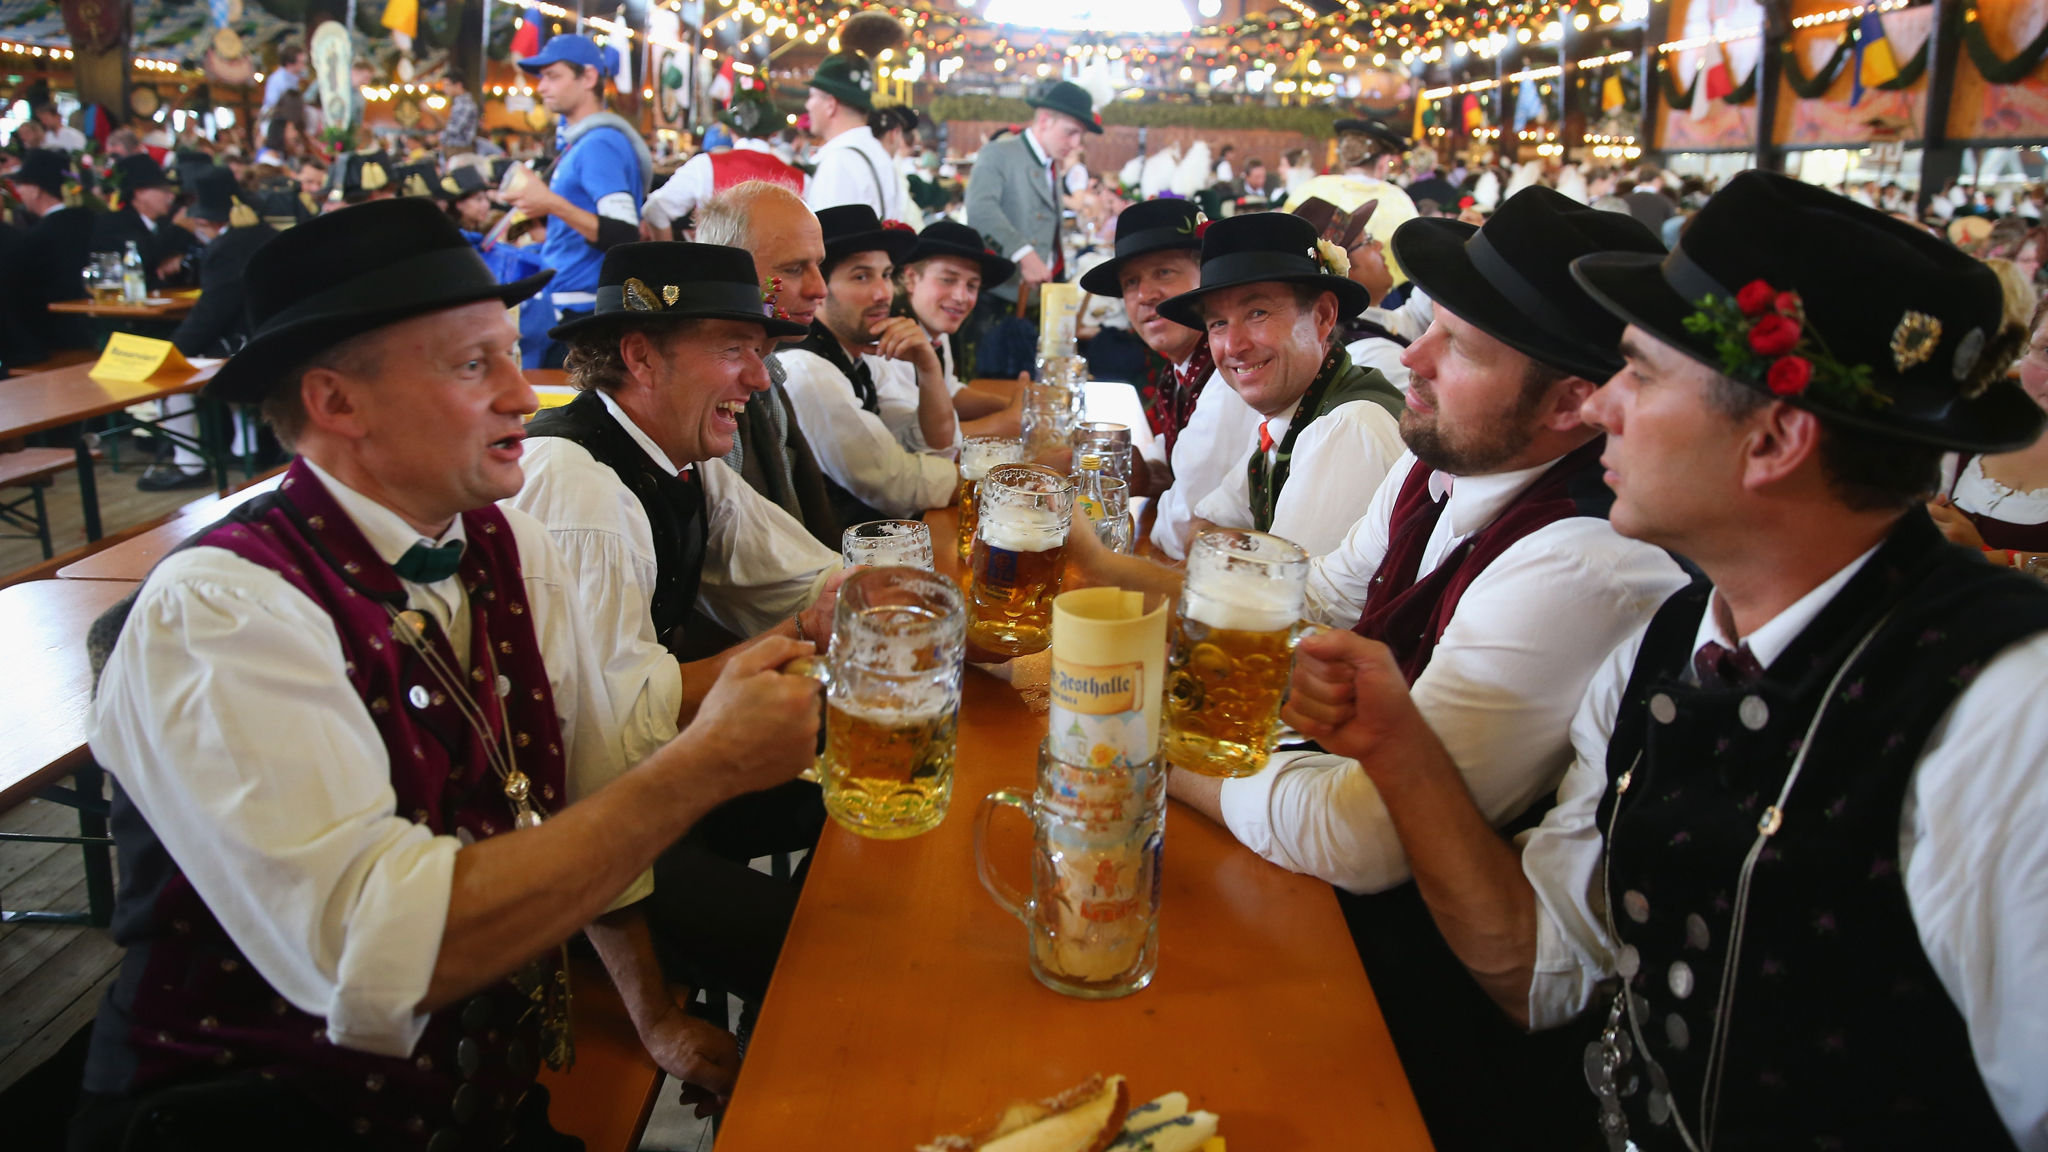 Cancelled Oktoberfest removes Bavaria's froth | Financial Times